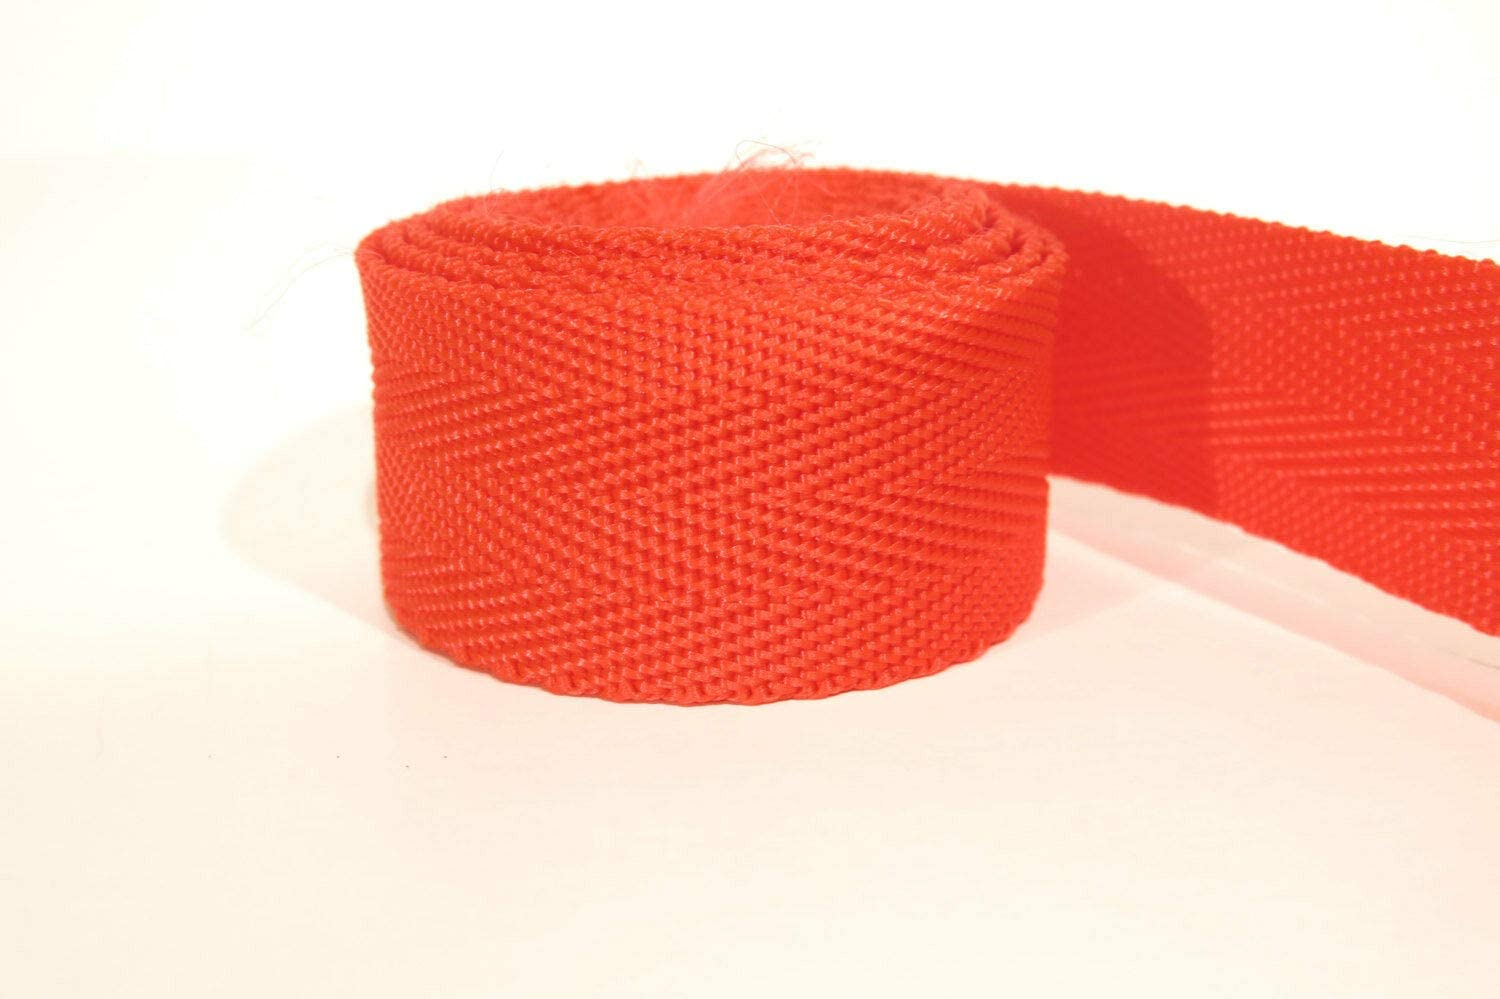 Ribbon for Wedding Gift Bouquets - Wrapping - Party Decorations - DIY Crafting 3 Yards of 1 inch / 25mm red Webbing, Strap (WB5)